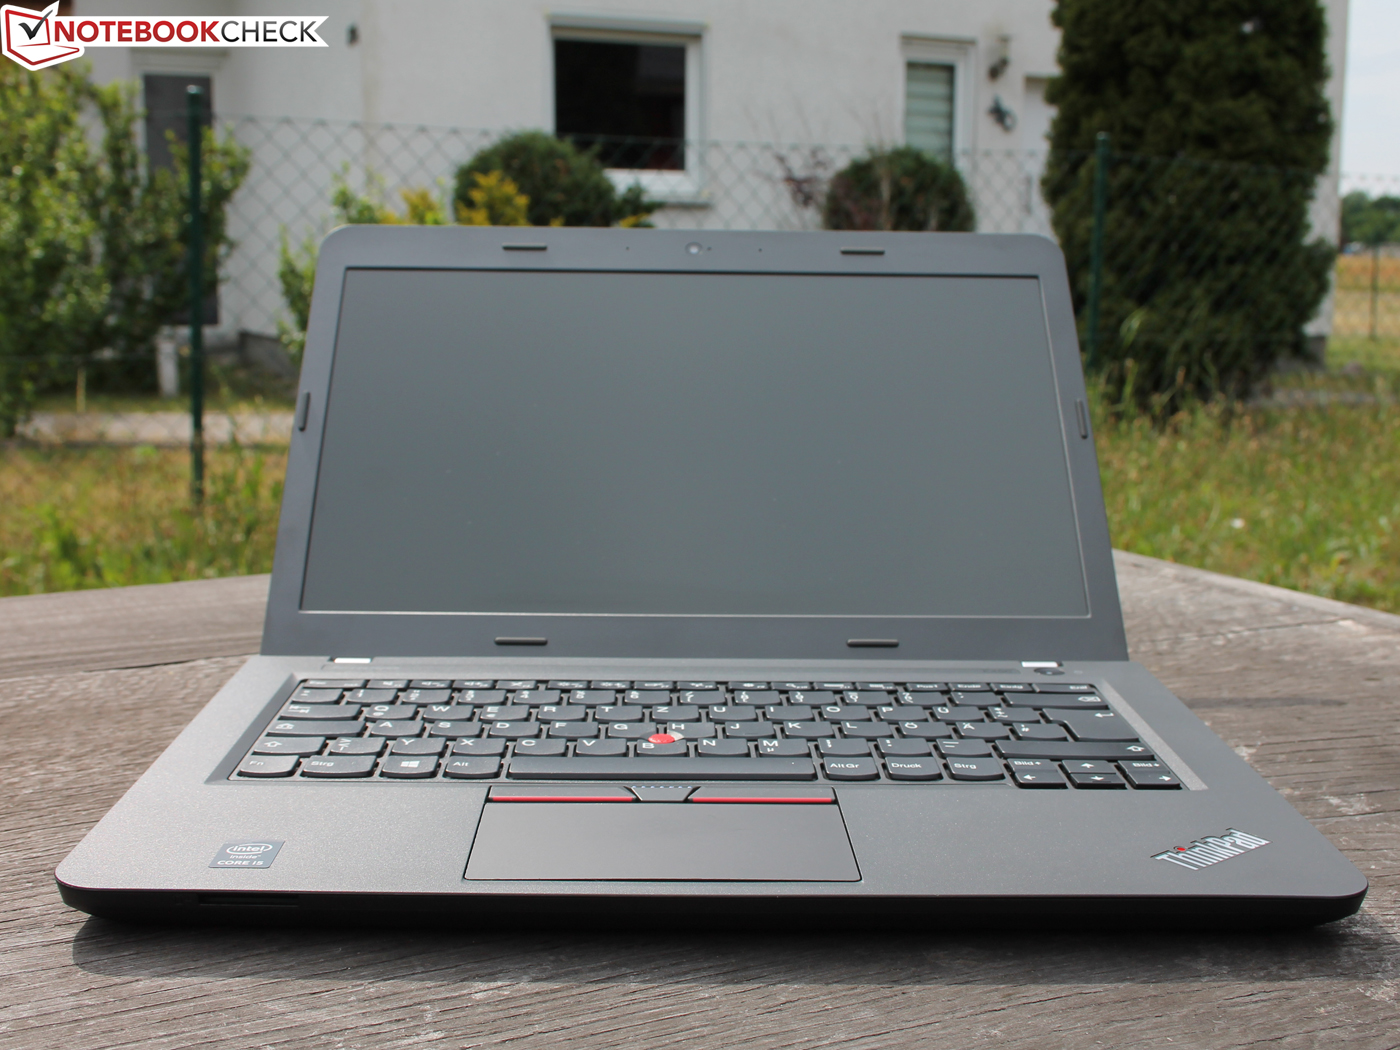 LENOVO THINKPAD E450 AMD GRAPHICS WINDOWS 8.1 DRIVER